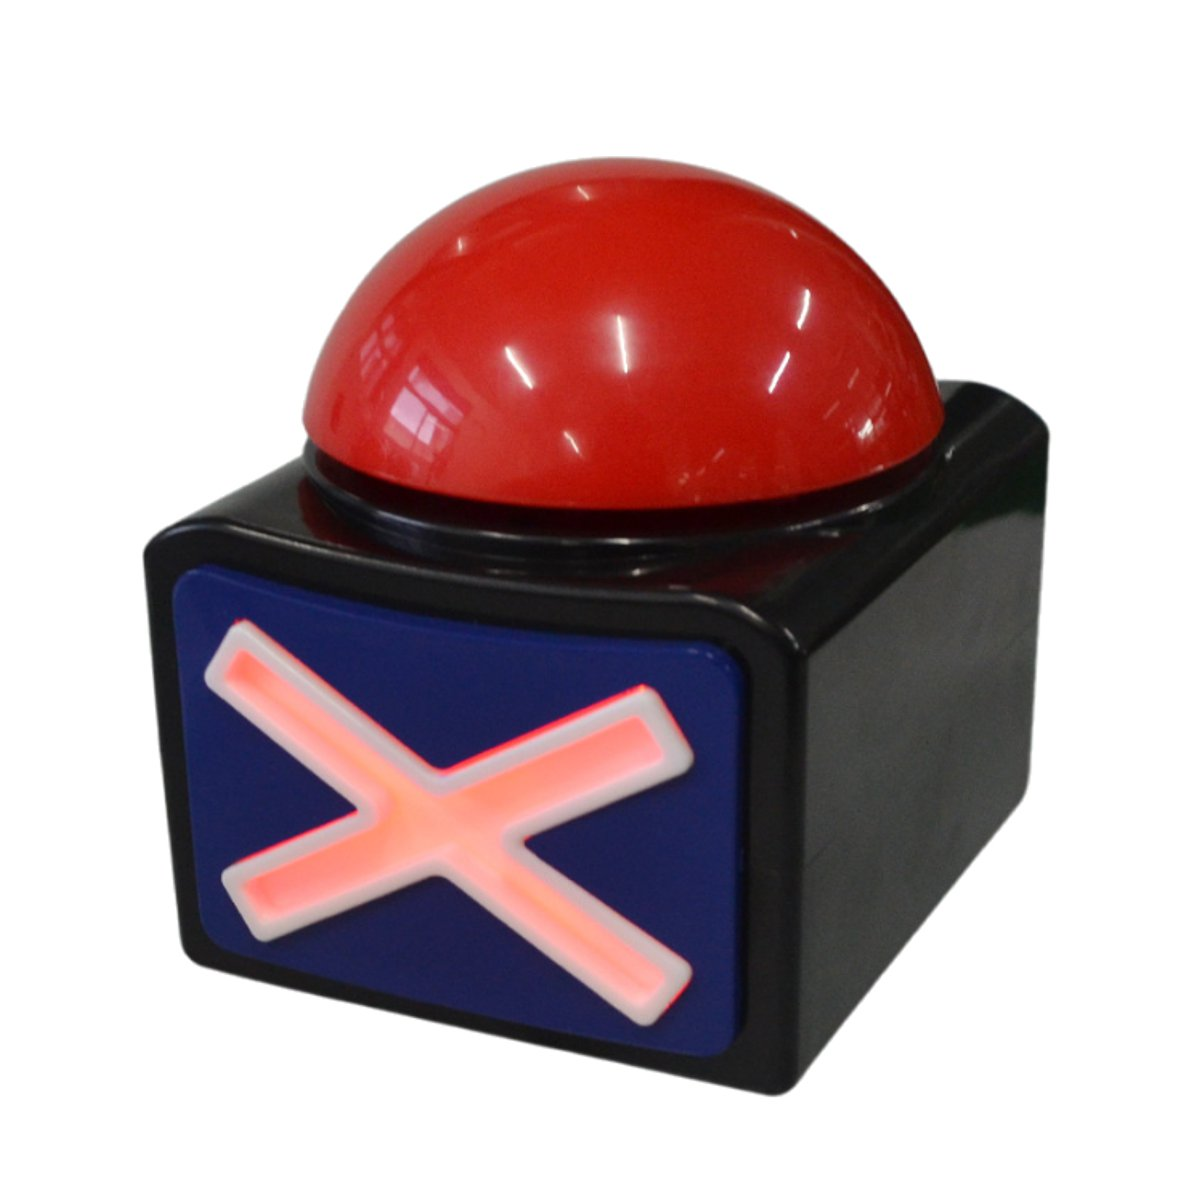 Buzzer Alarm Push Button Lottery Trivia Quiz Game Red Light With Sound And Light